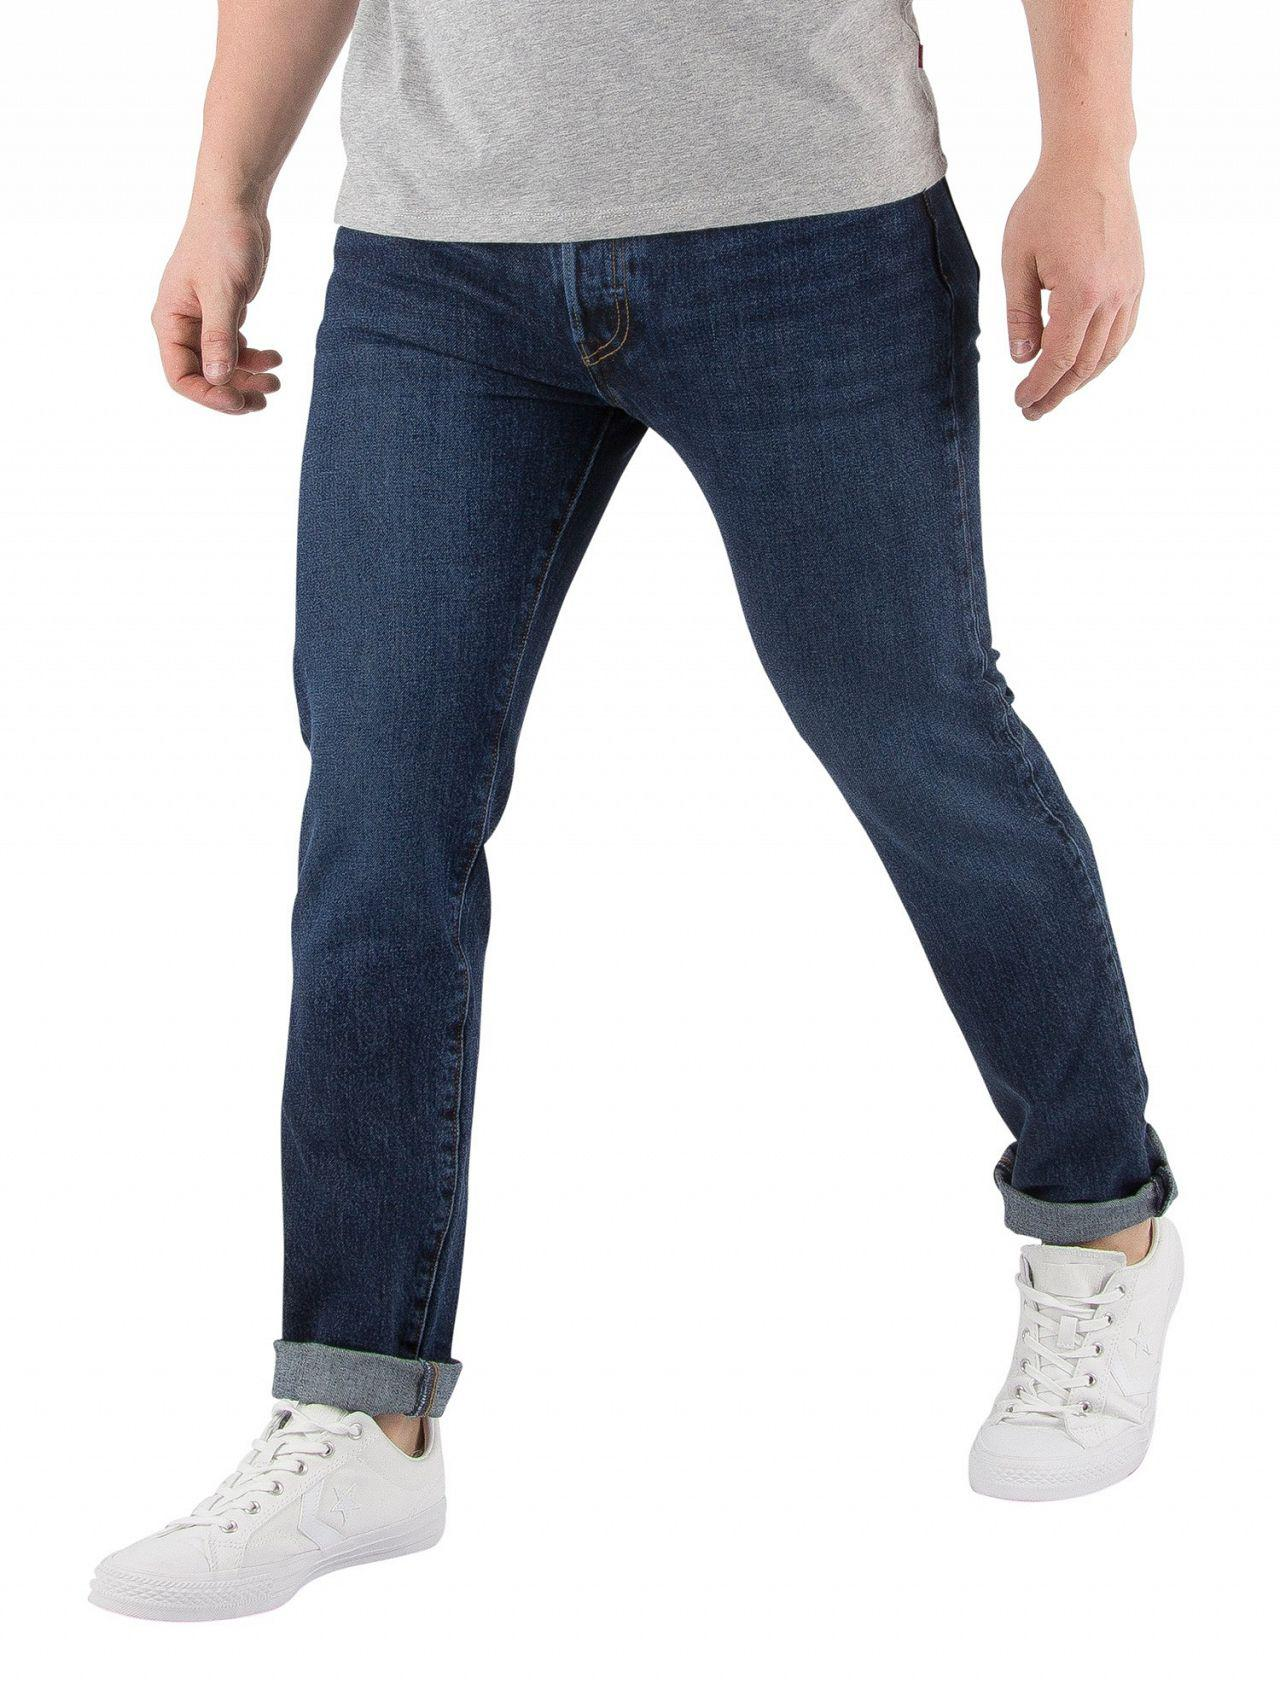 a2574c4d6fb Levi's - Blue Warp 501 Skinny Luther Jeans for Men - Lyst. View fullscreen